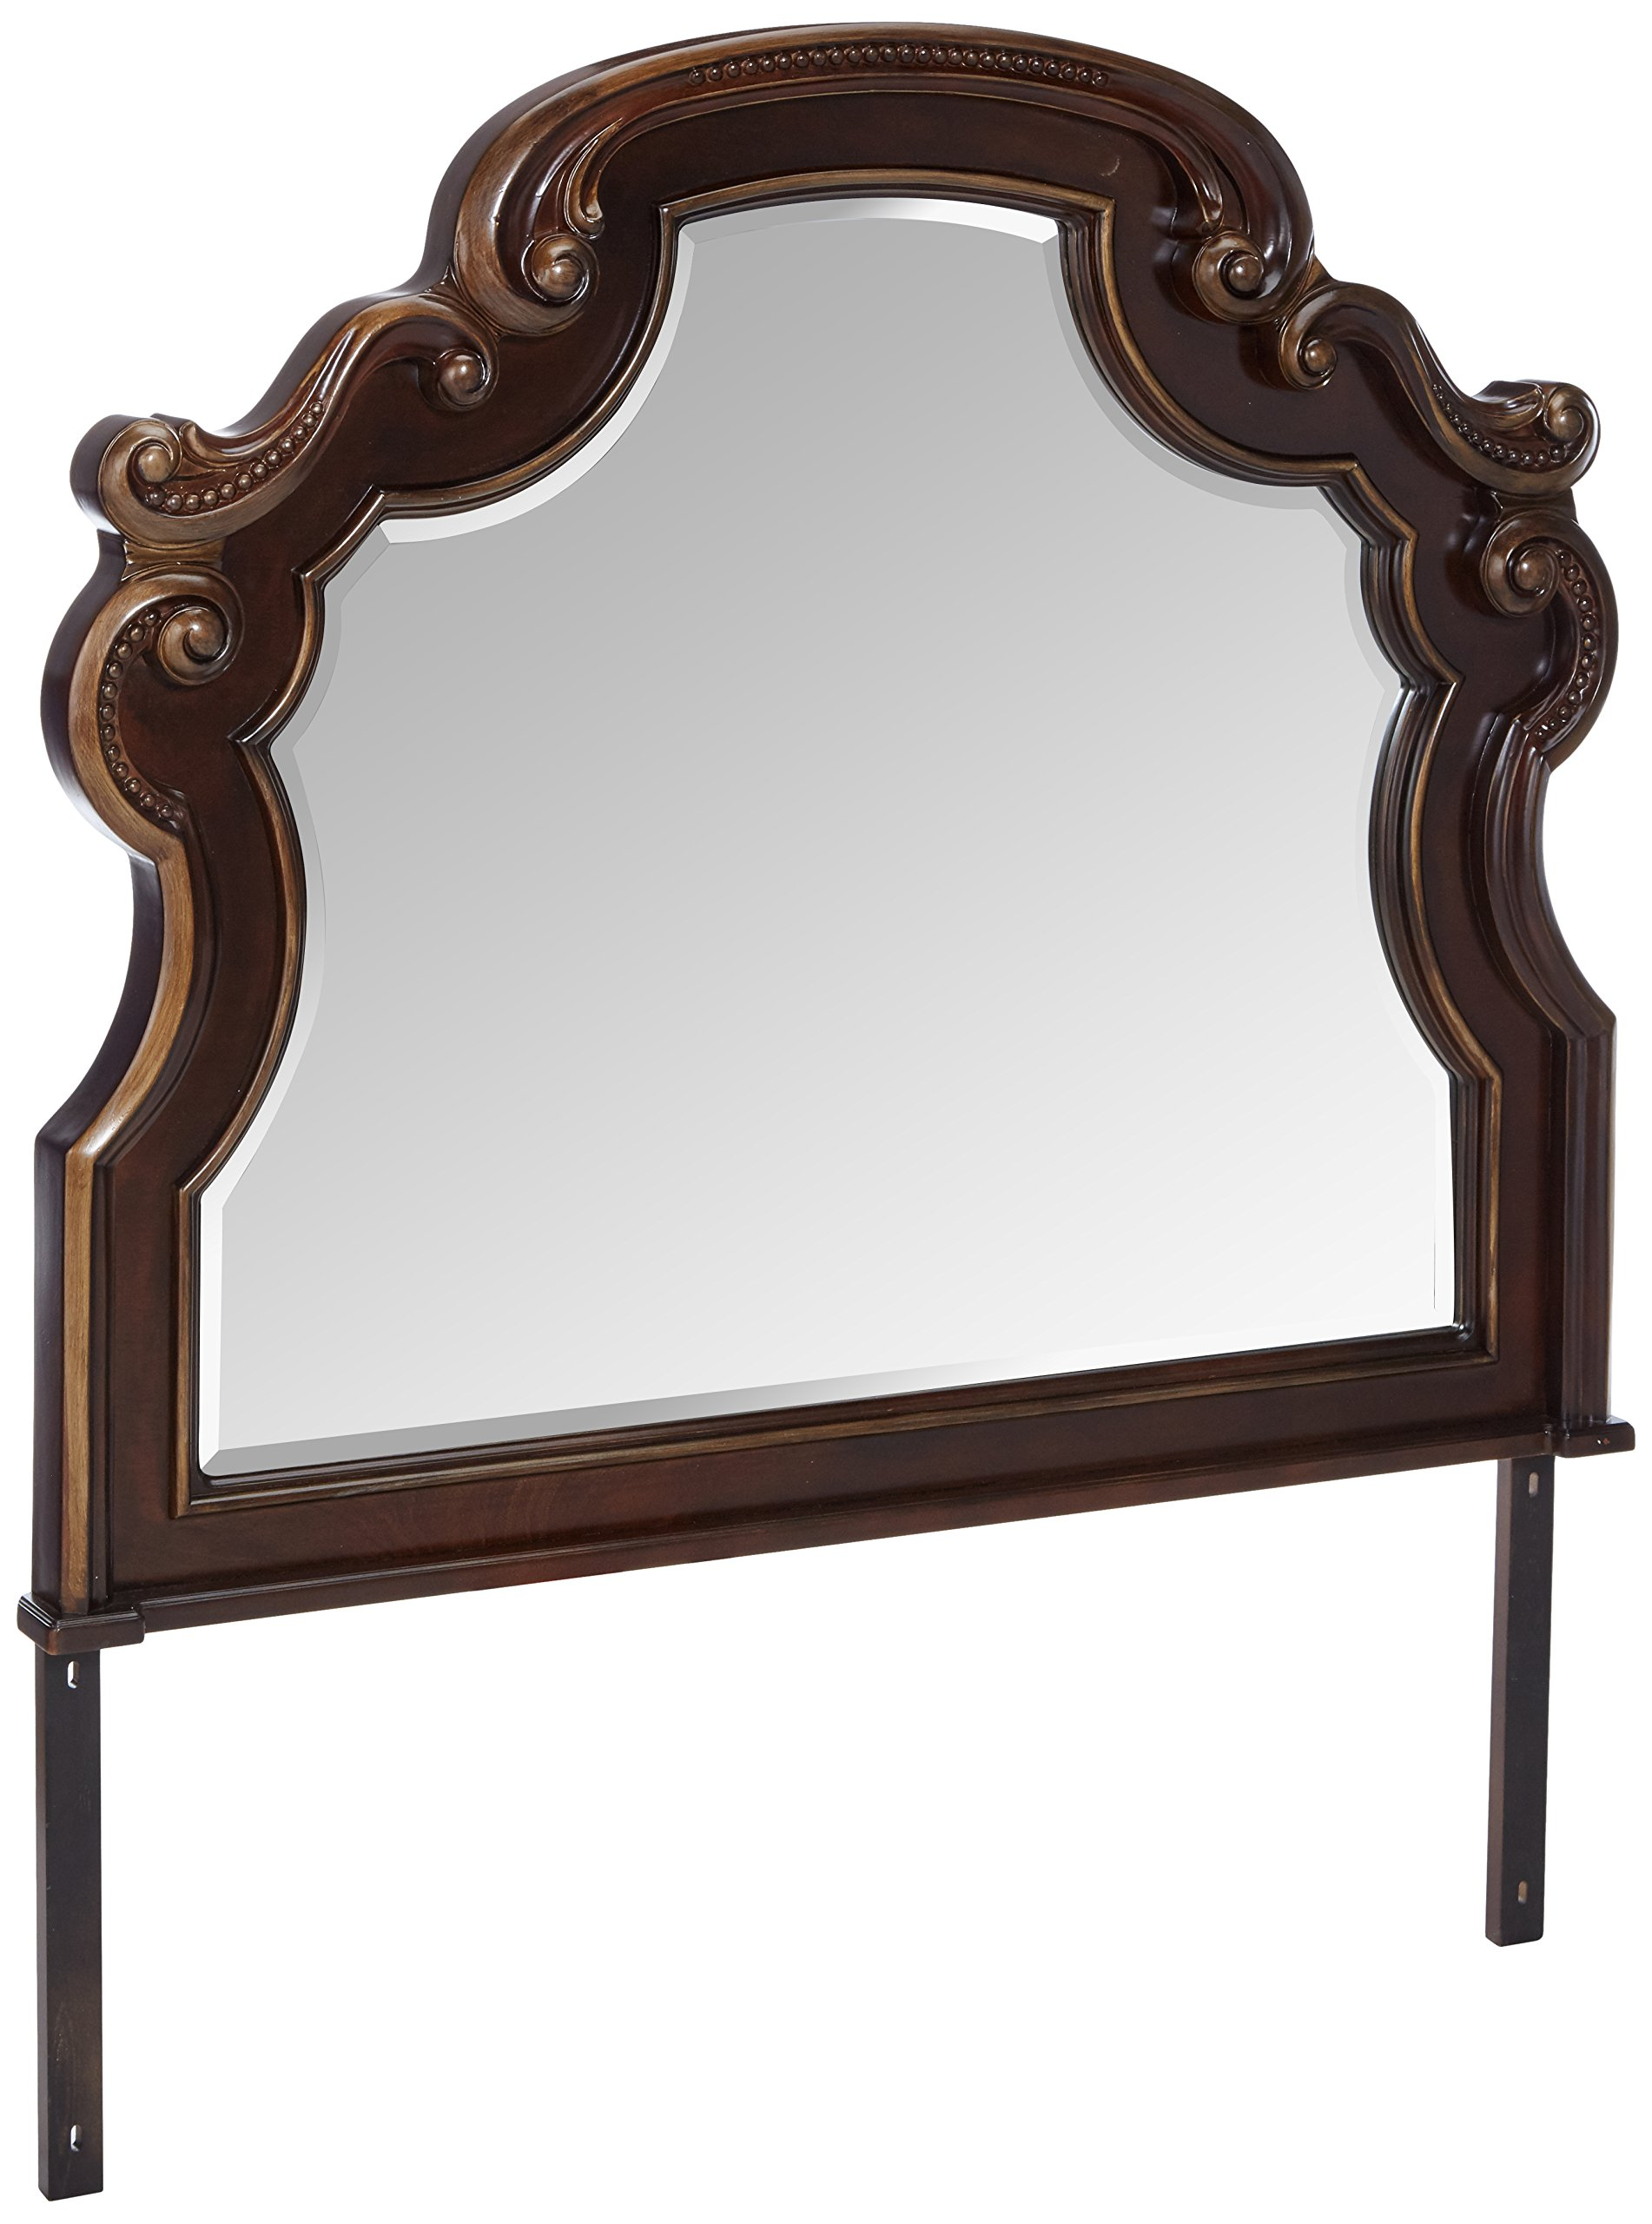 Signature Design by Ashley B715-36 Bedroom Mirror, One Size